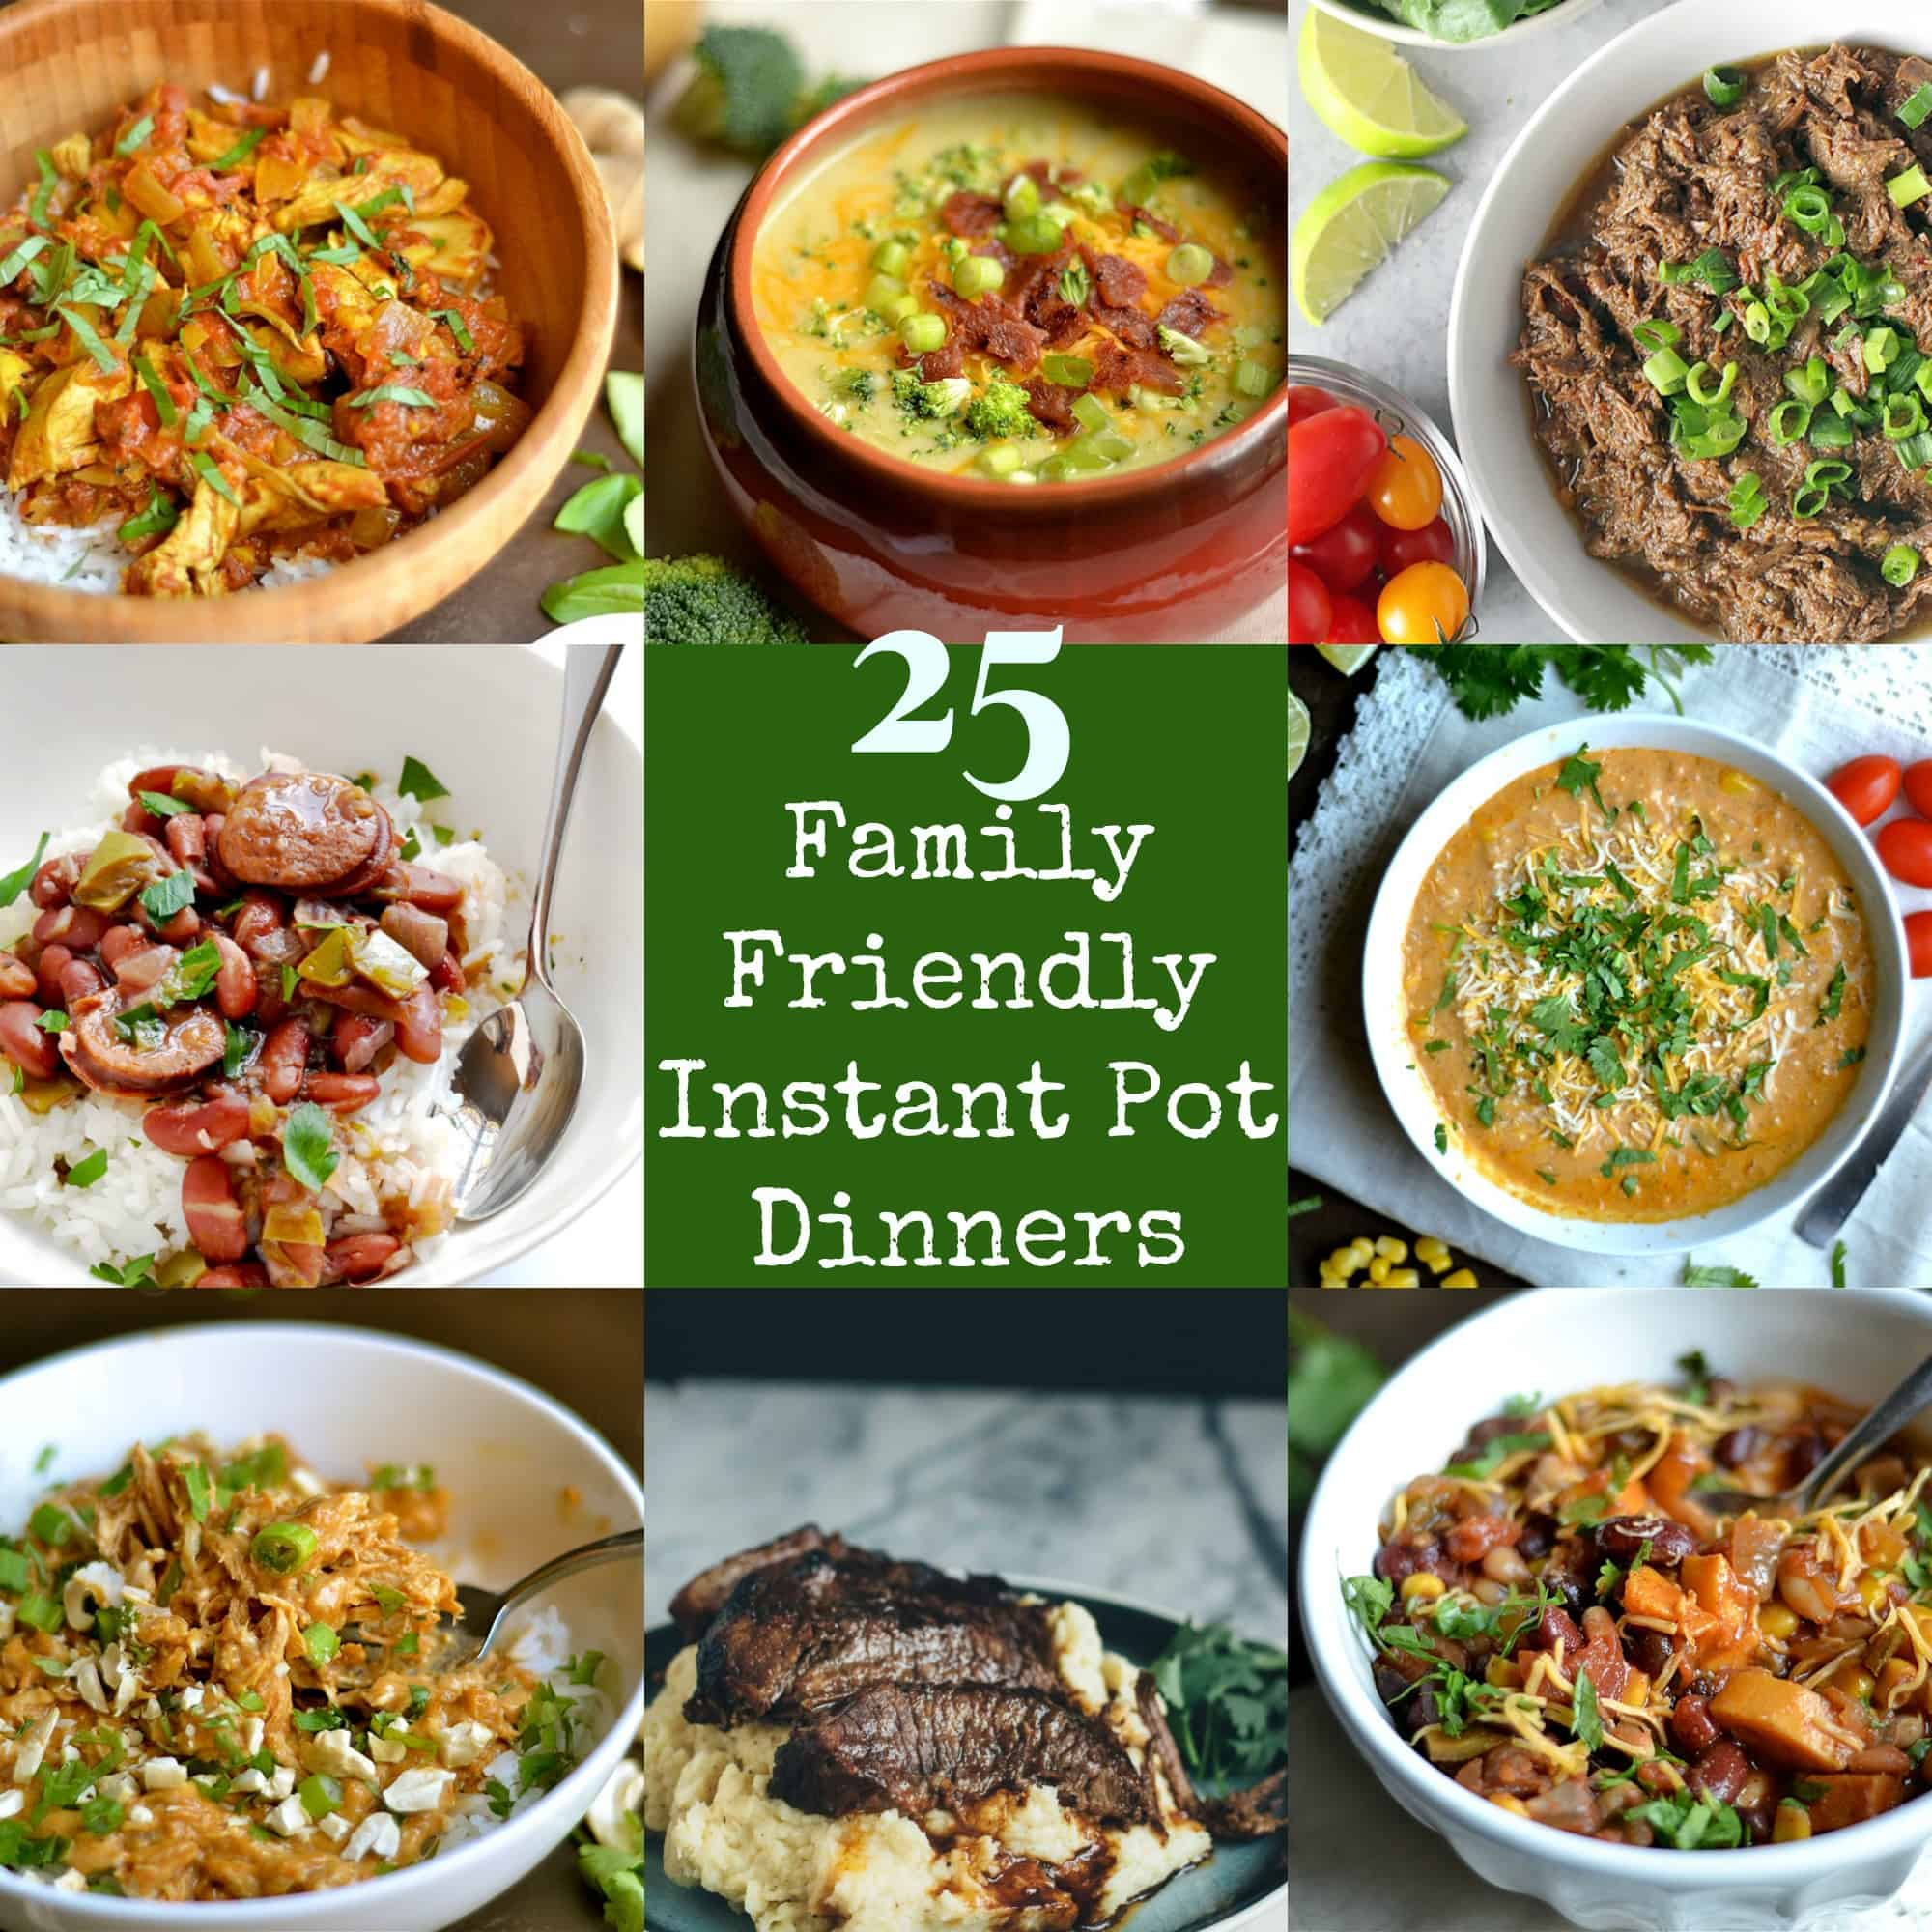 25 family friendly instant pot dinners wholesomelicious 25 family friendly instant pot dinners forumfinder Choice Image